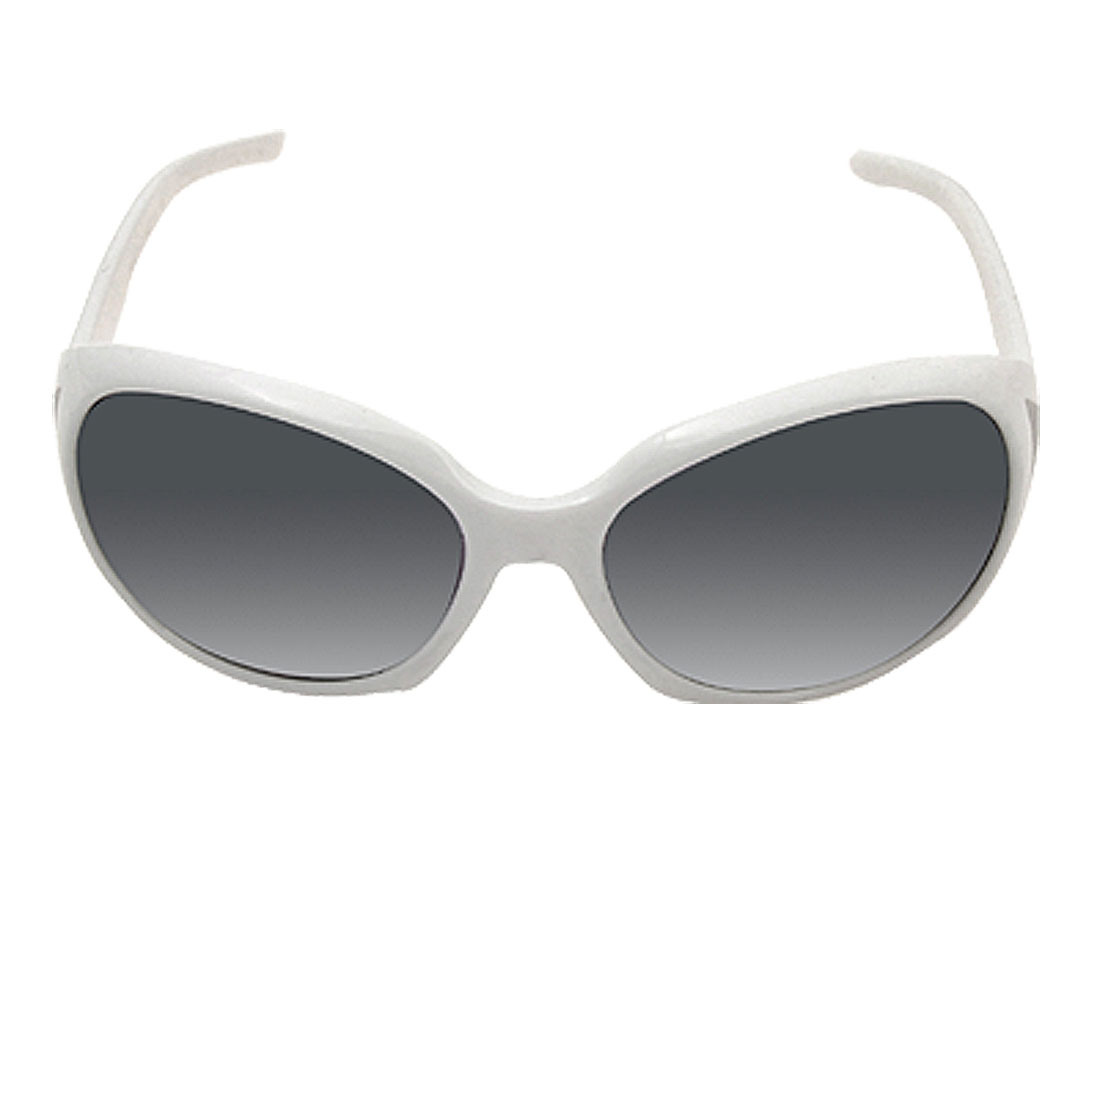 New Style Navy Gray Lens White Frame Fashion Ladies Sunglasses